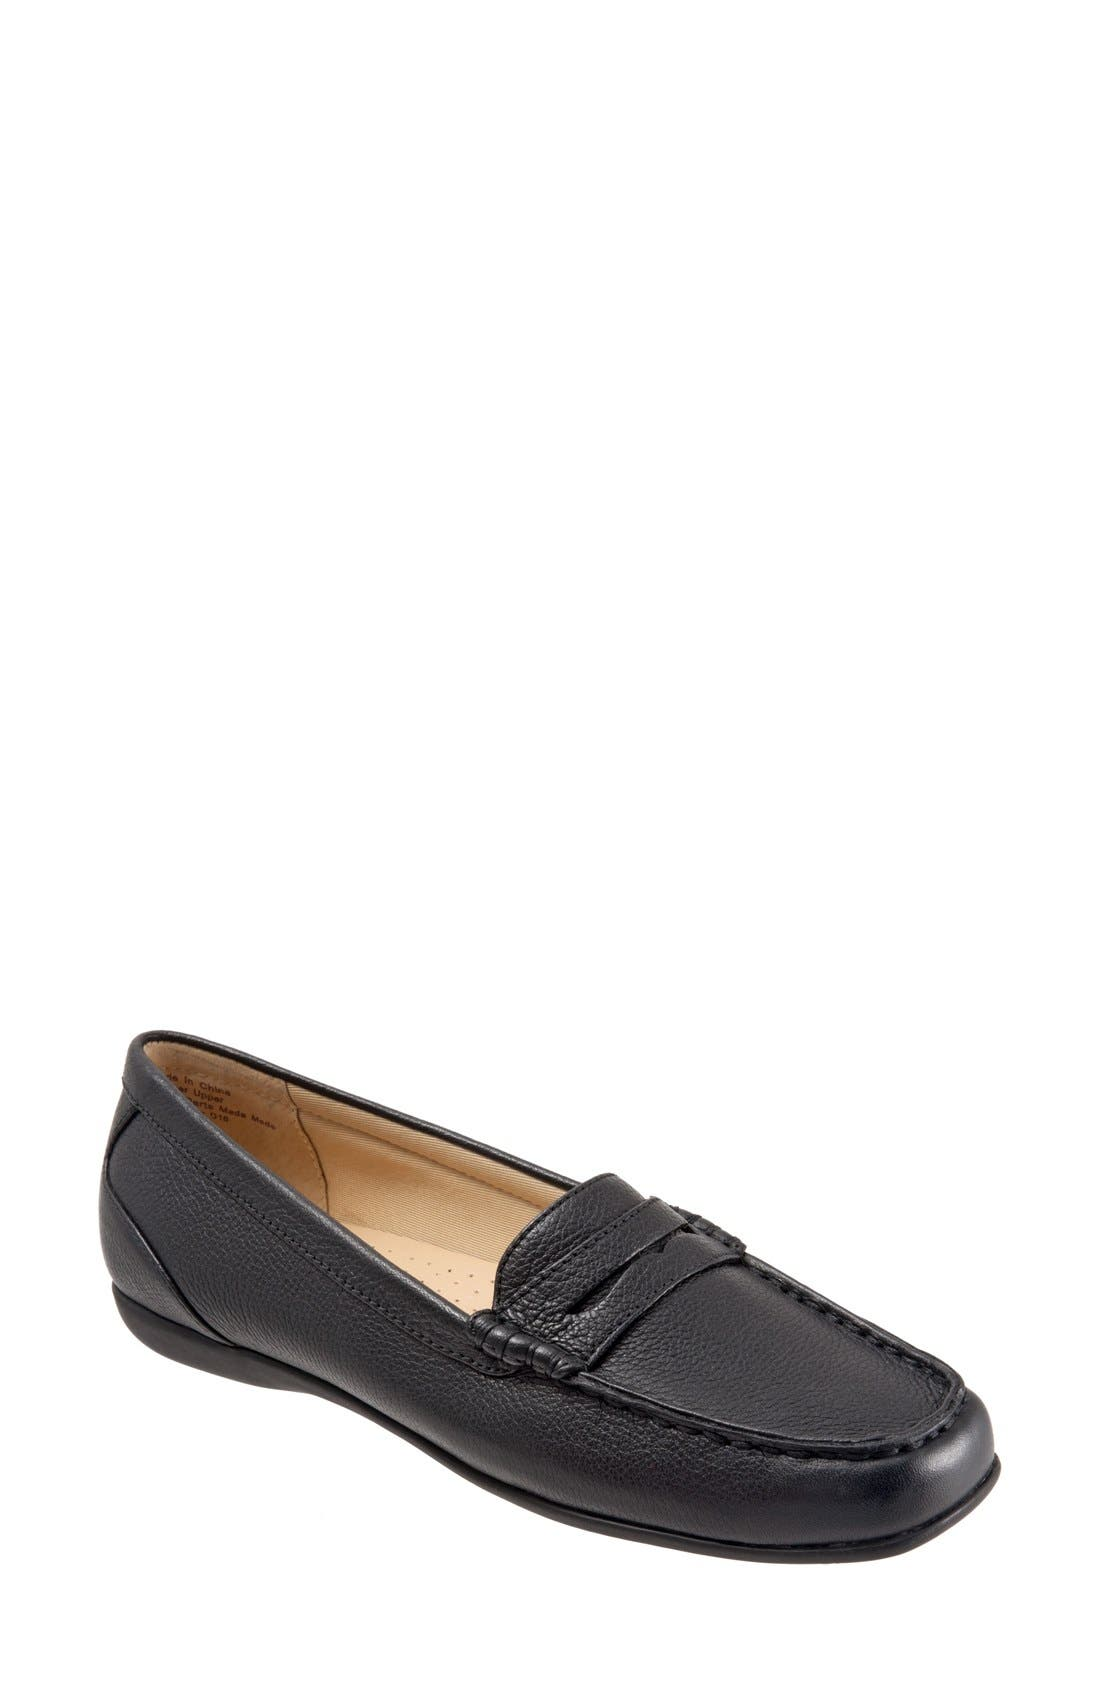 TROTTERS 'Staci' Penny Loafer, Main, color, BLACK LEATHER